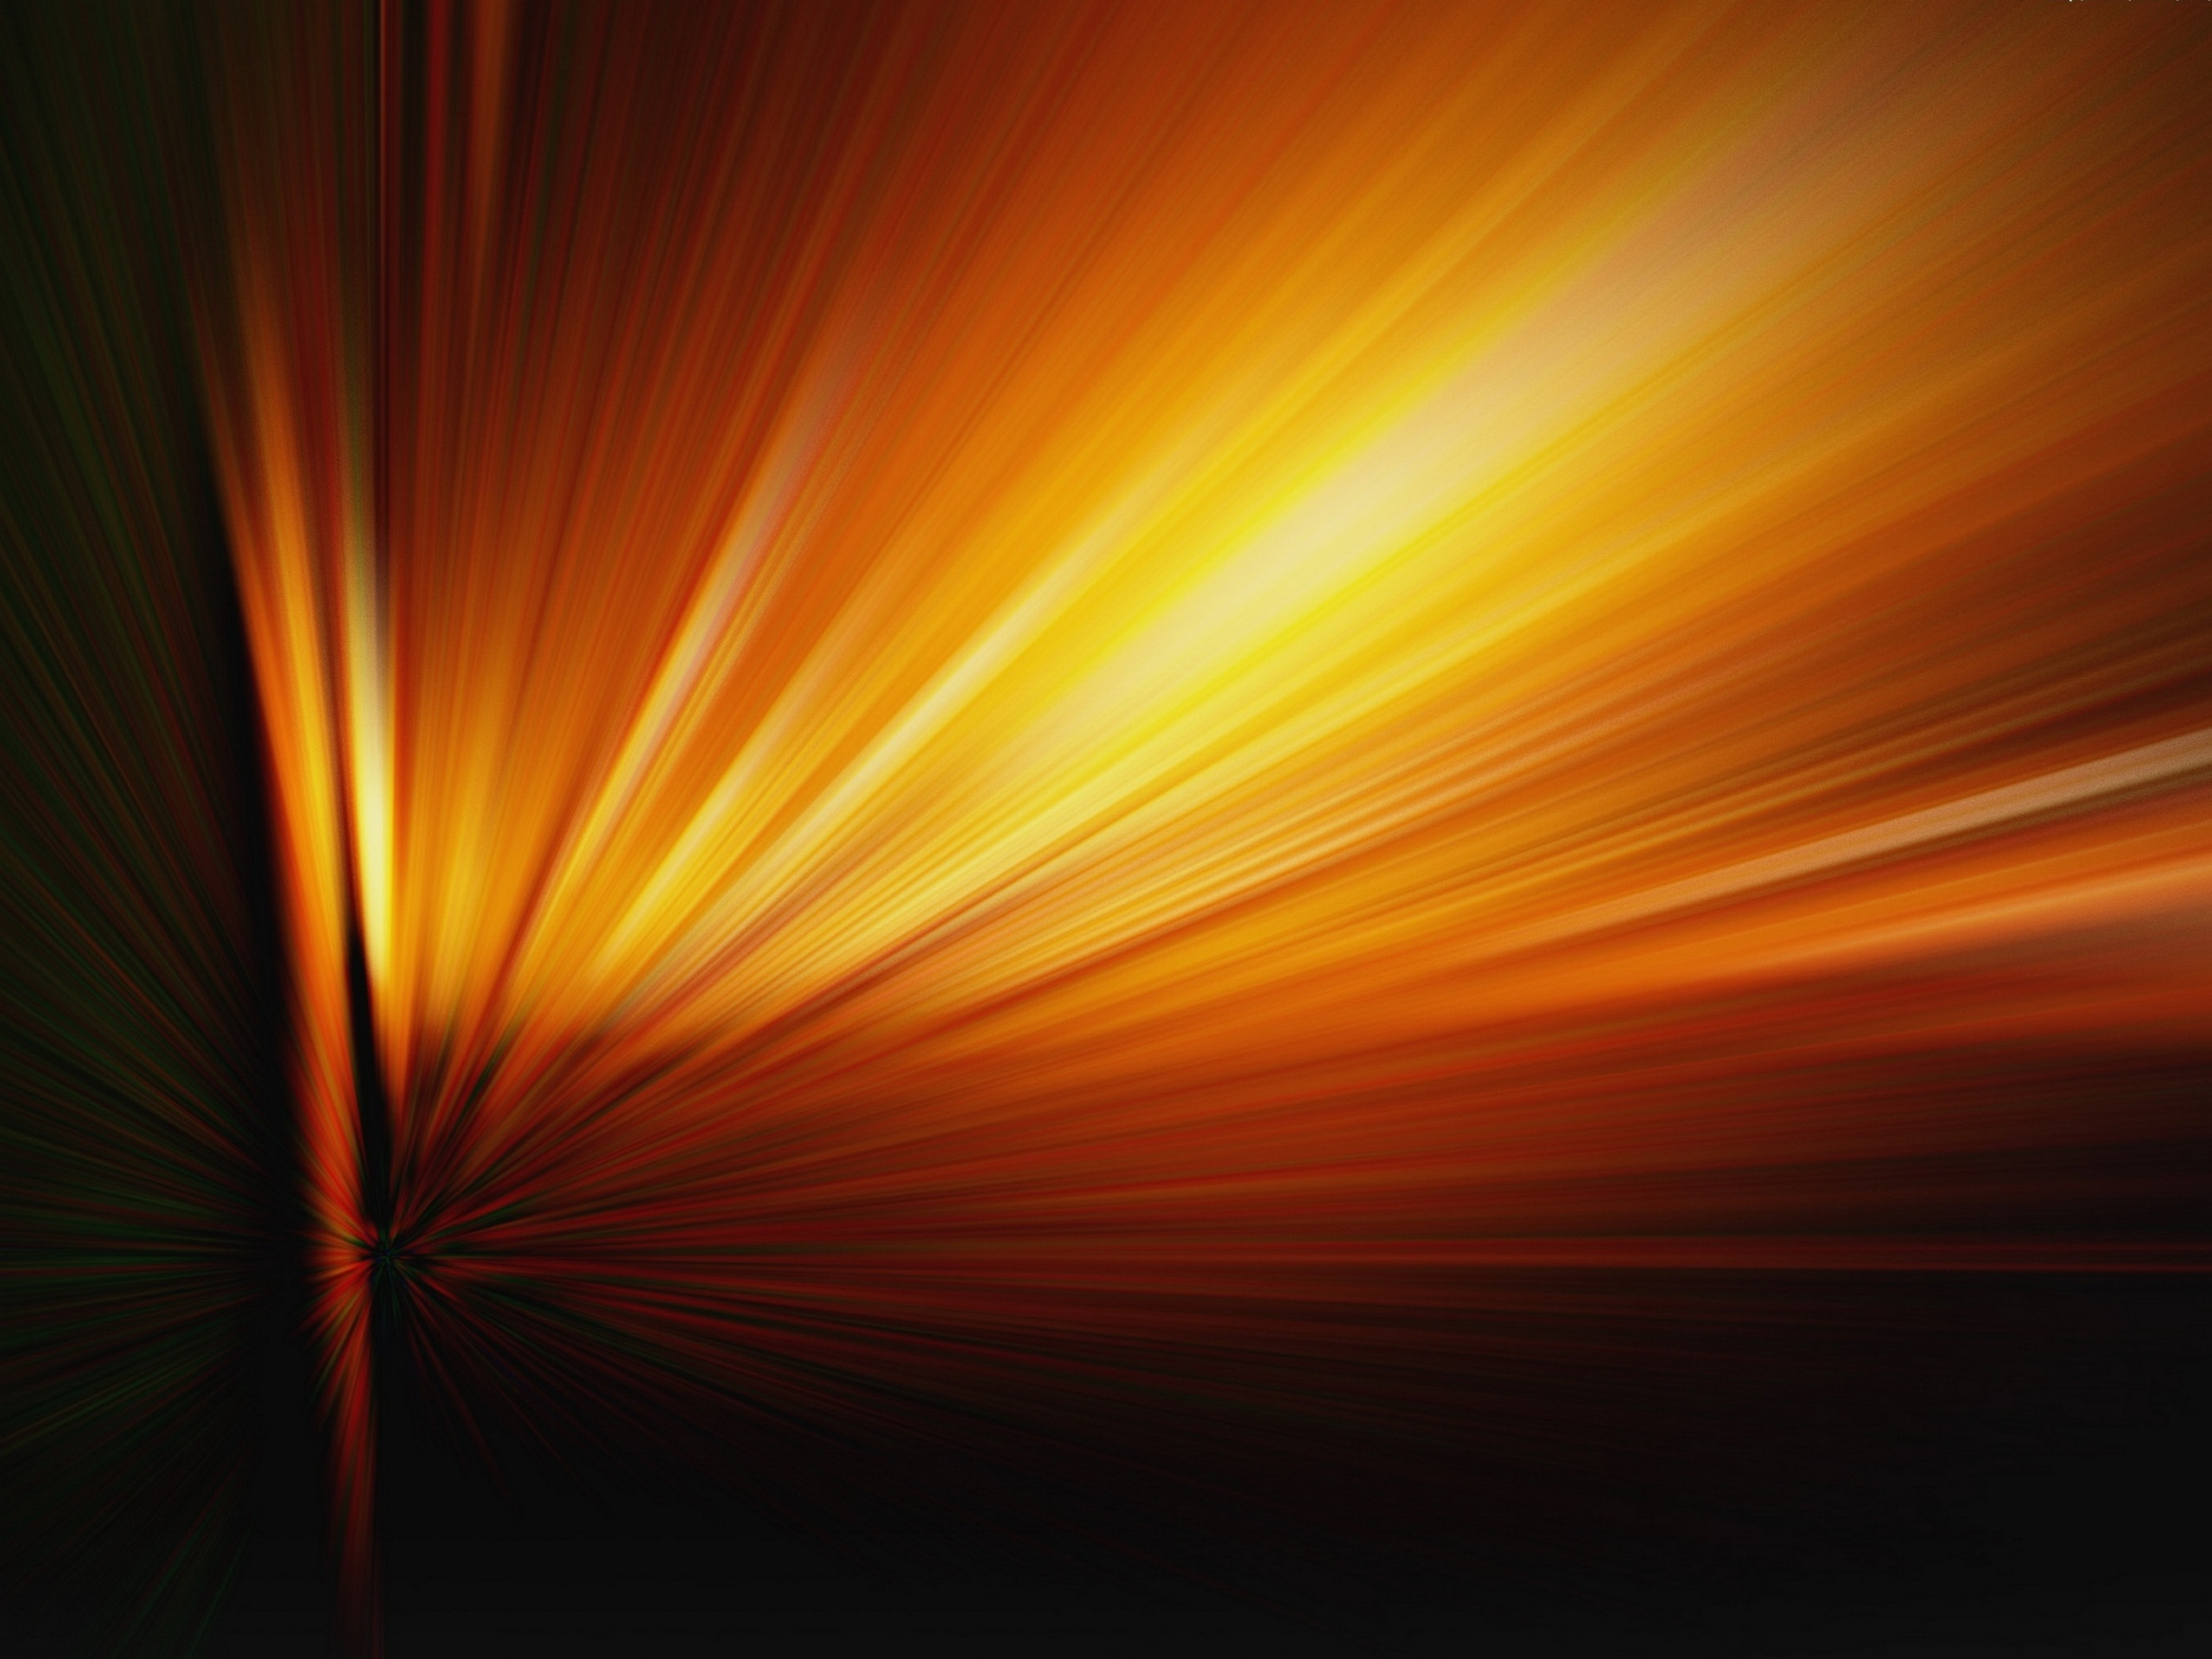 Orange Light HD 34823 2560x1920 px ~ HDWallSource.com